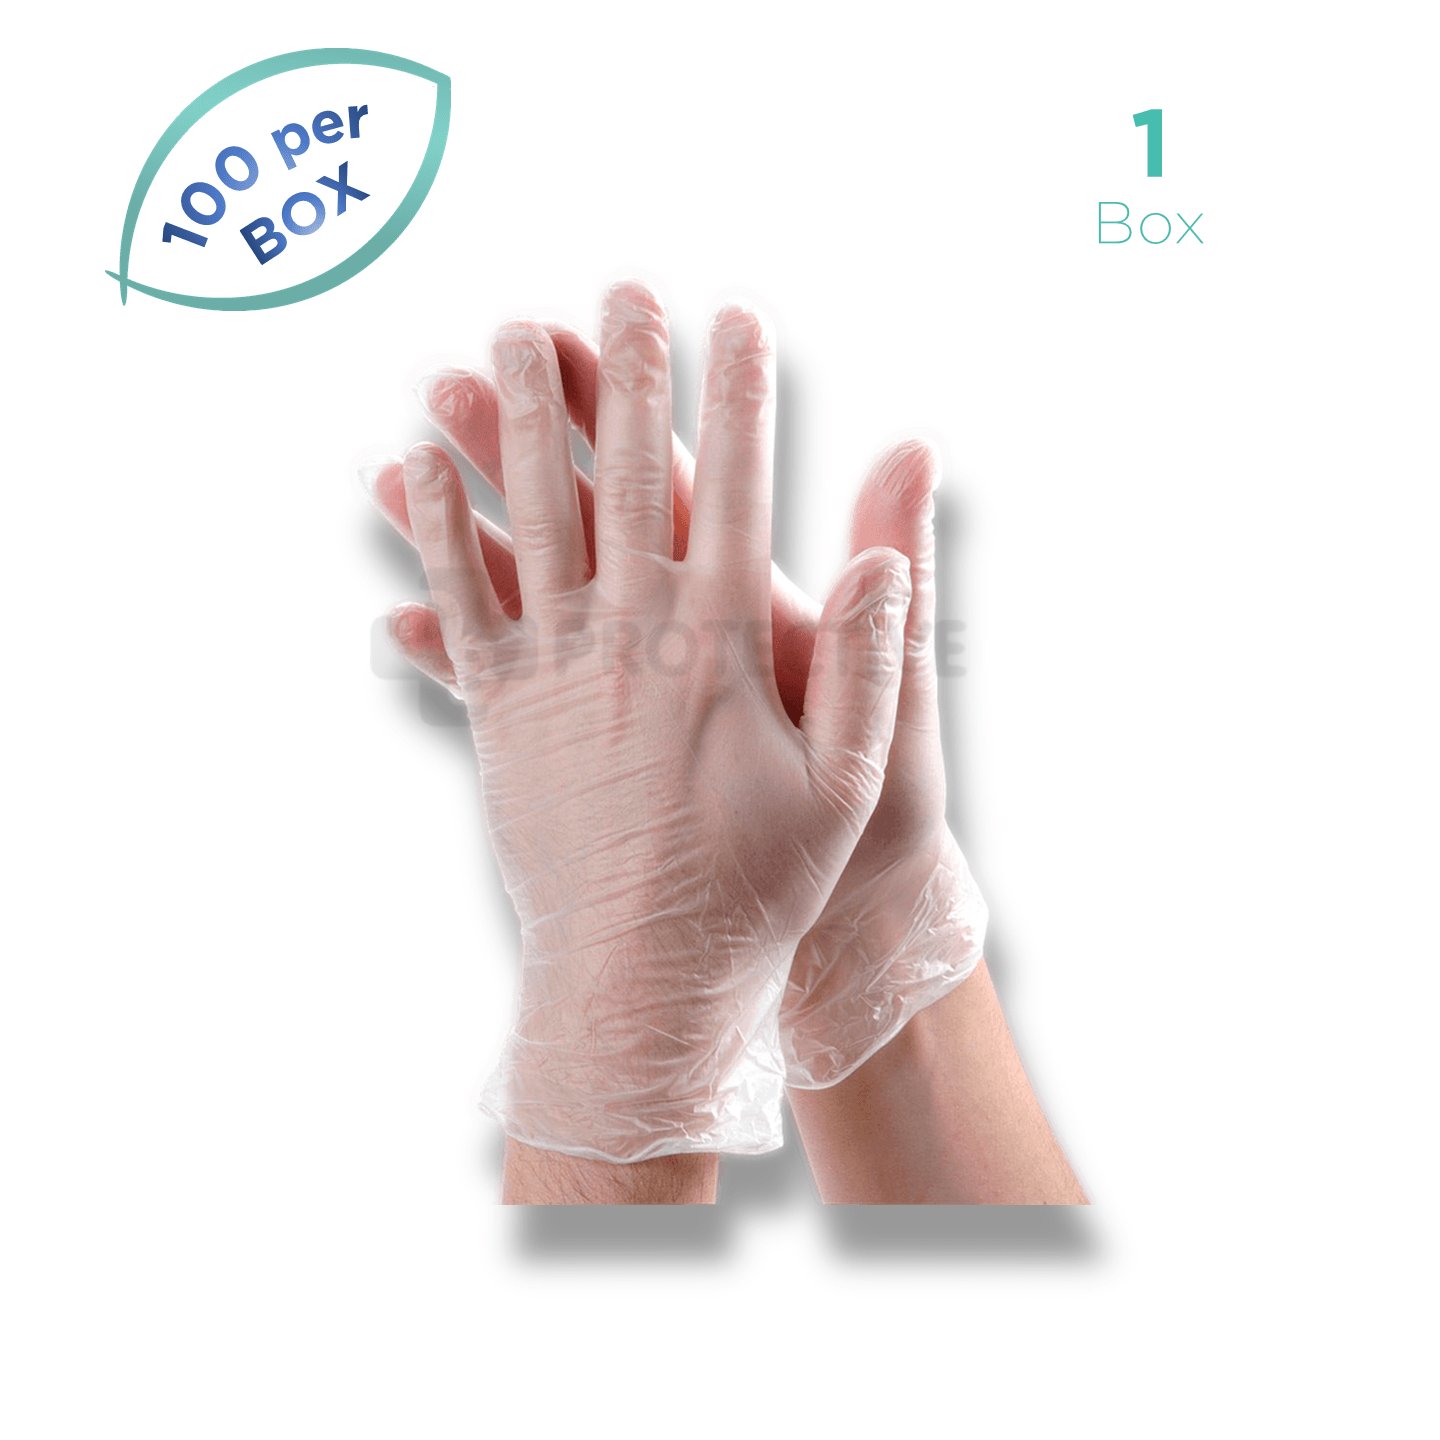 Vinyl Examination Gloves - Pack of 100. - USA Medical Supply - DB Protective